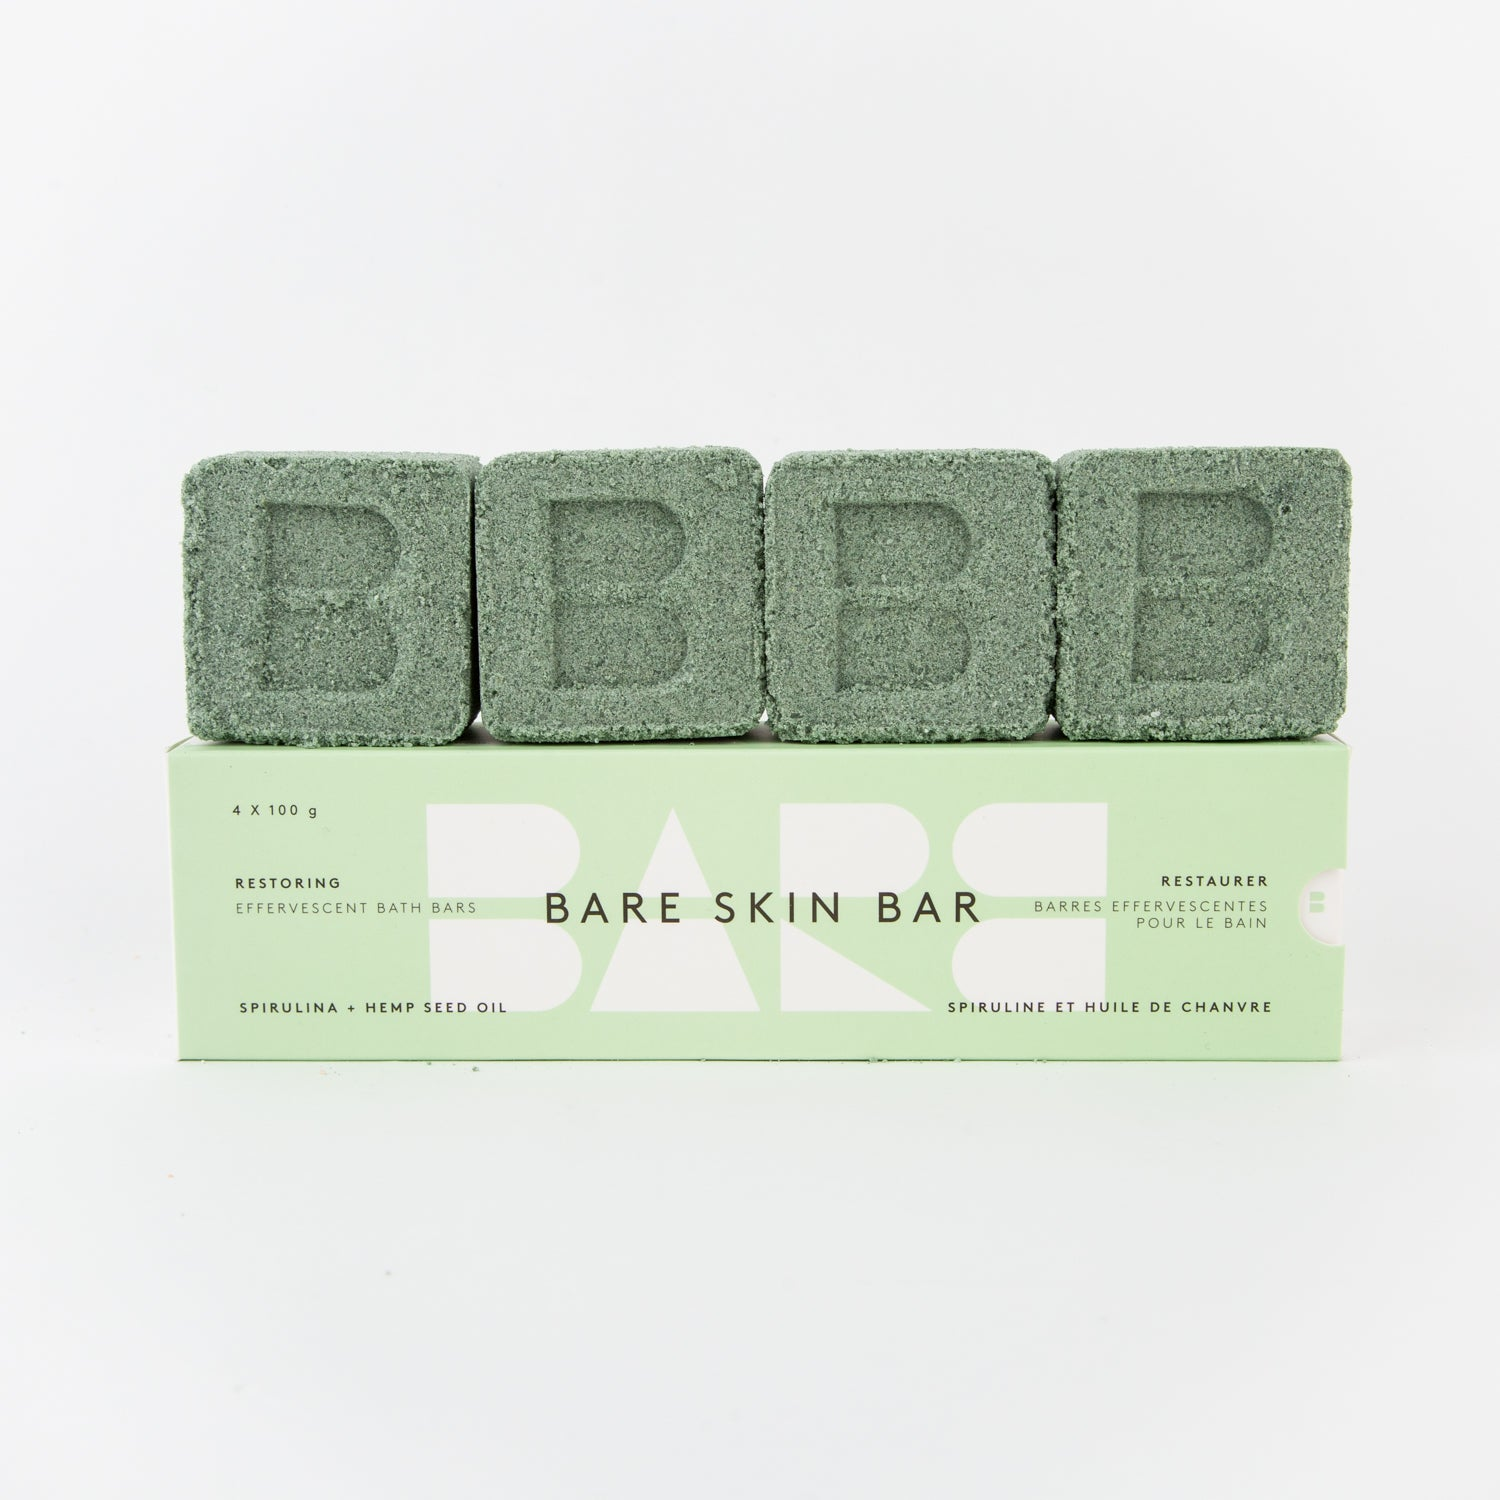 spirulina and hemp seed oil bath bar pack